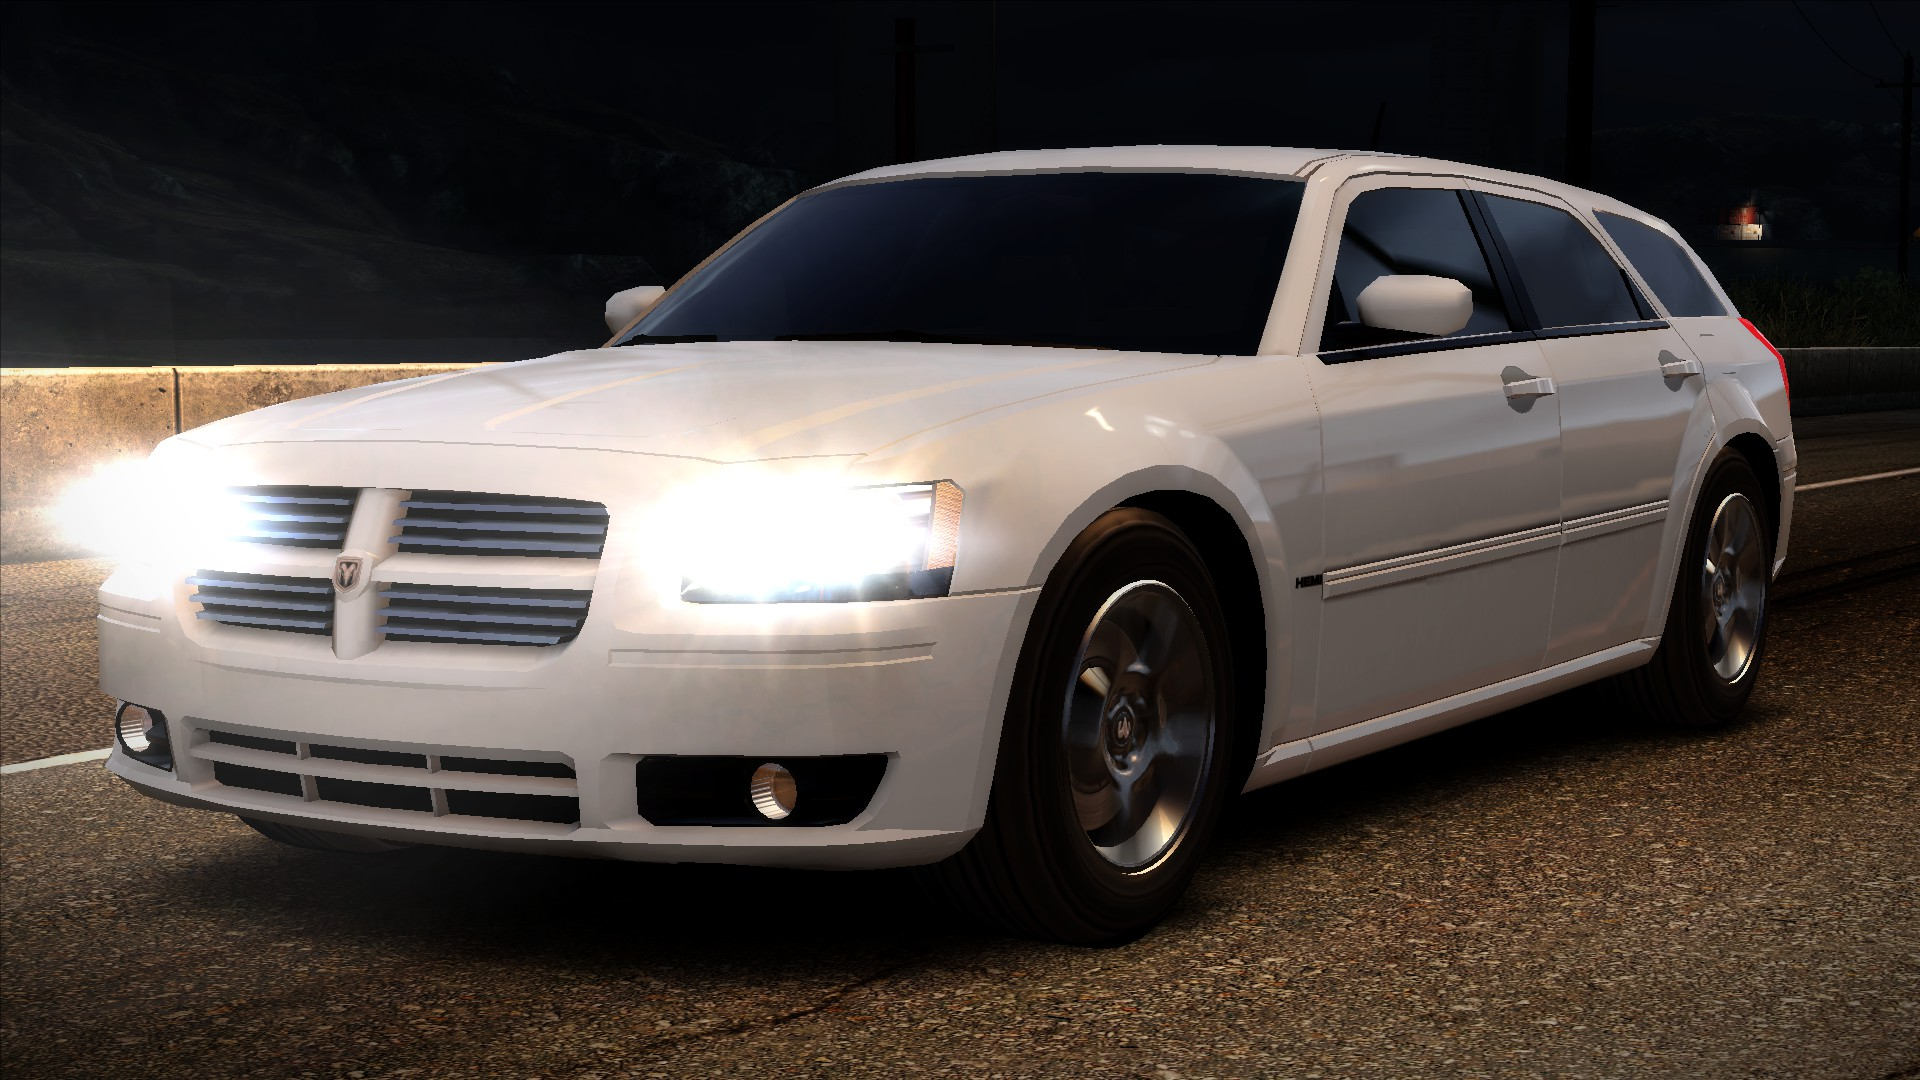 Dodge Magnum Rt Lx Need For Speed Wiki Fandom Powered By Wikia